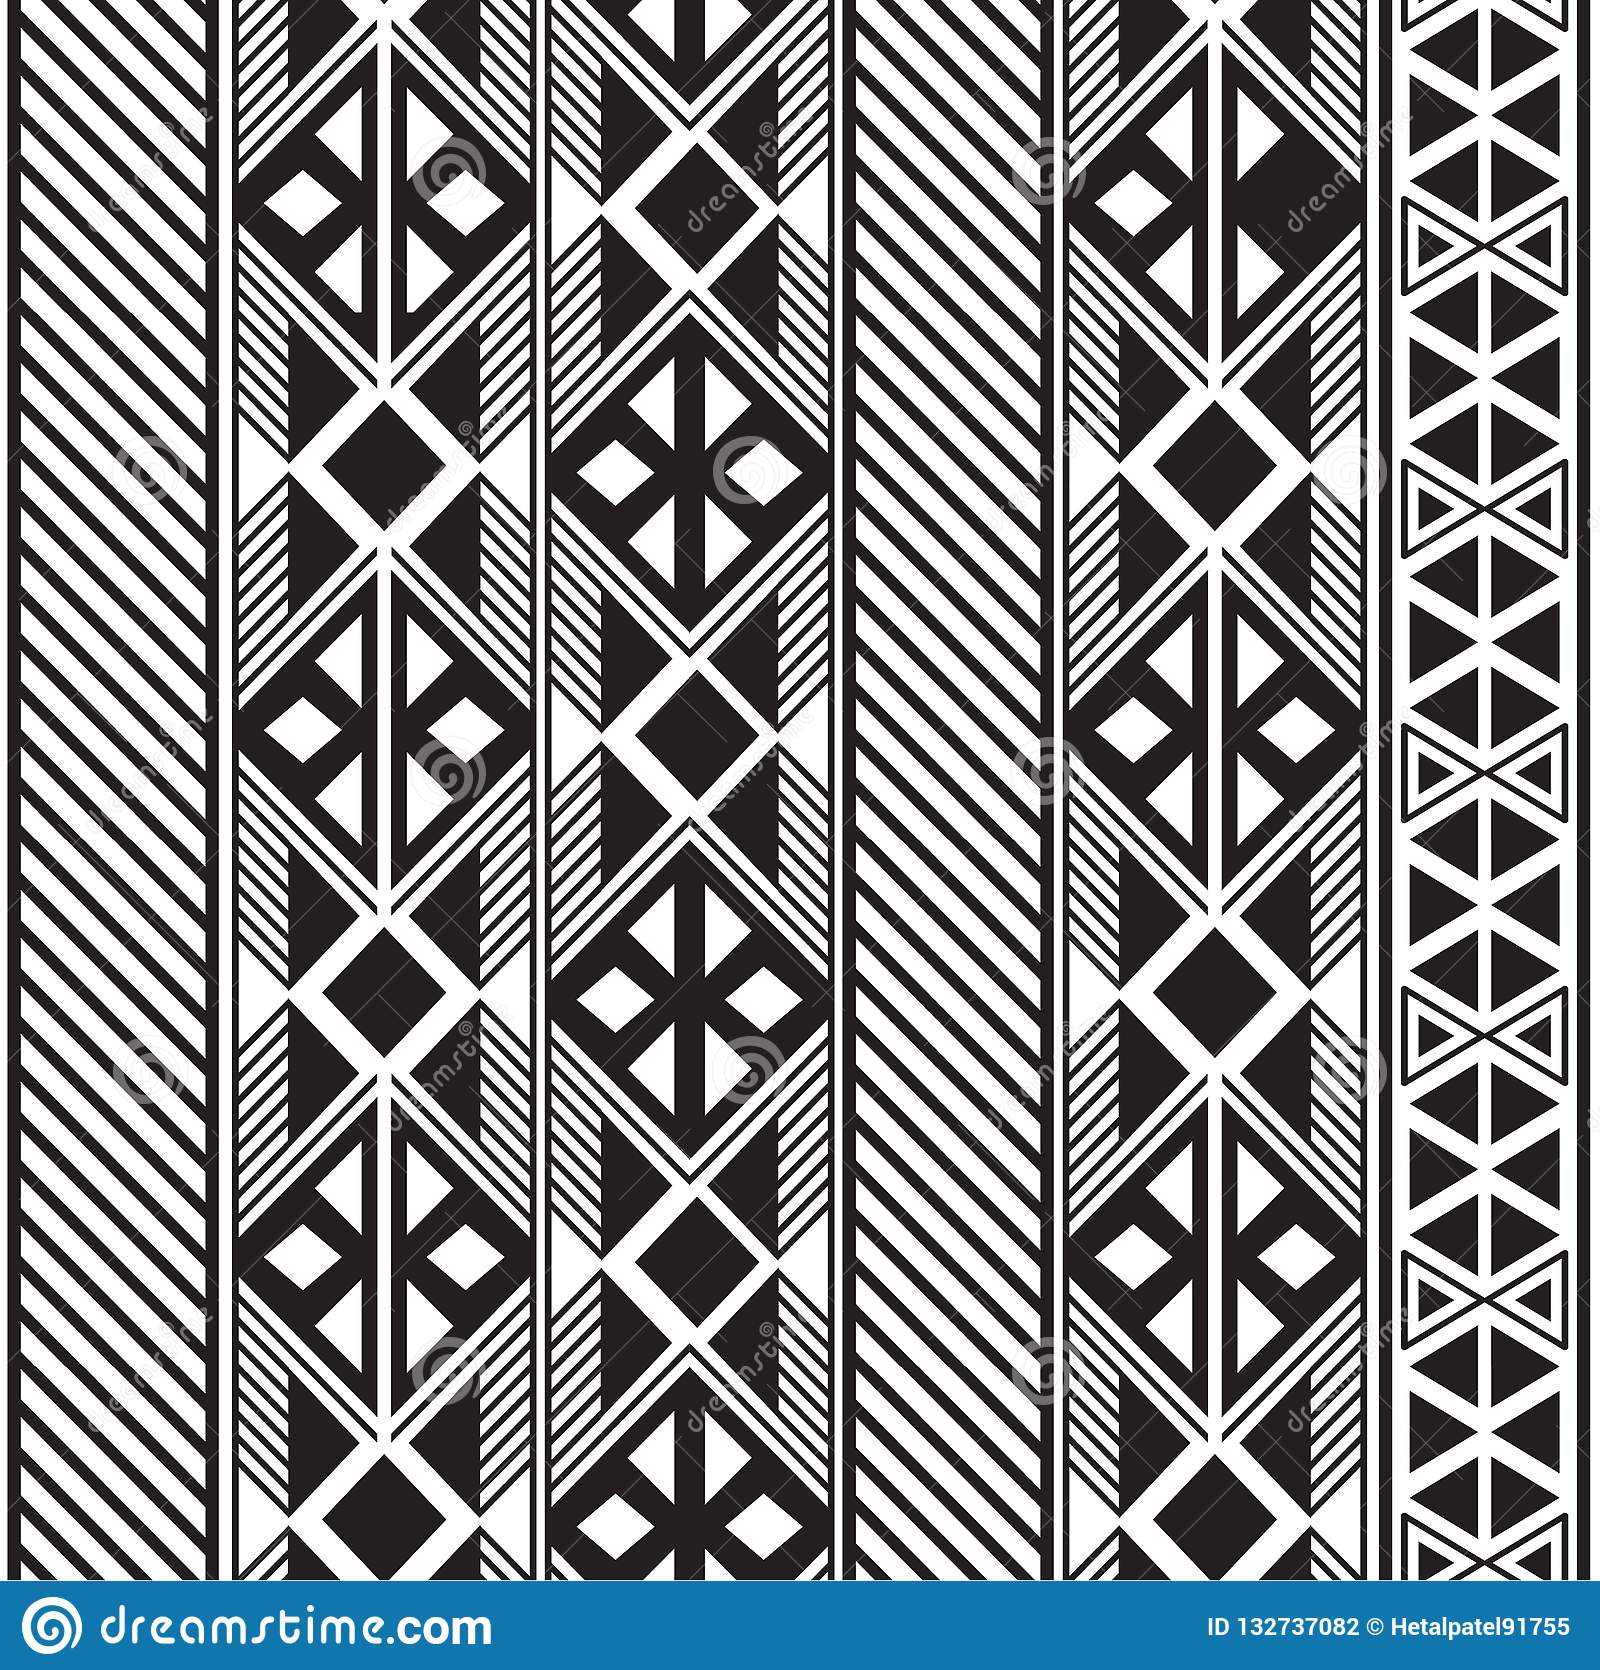 Seamless tribal pattern design in black and white